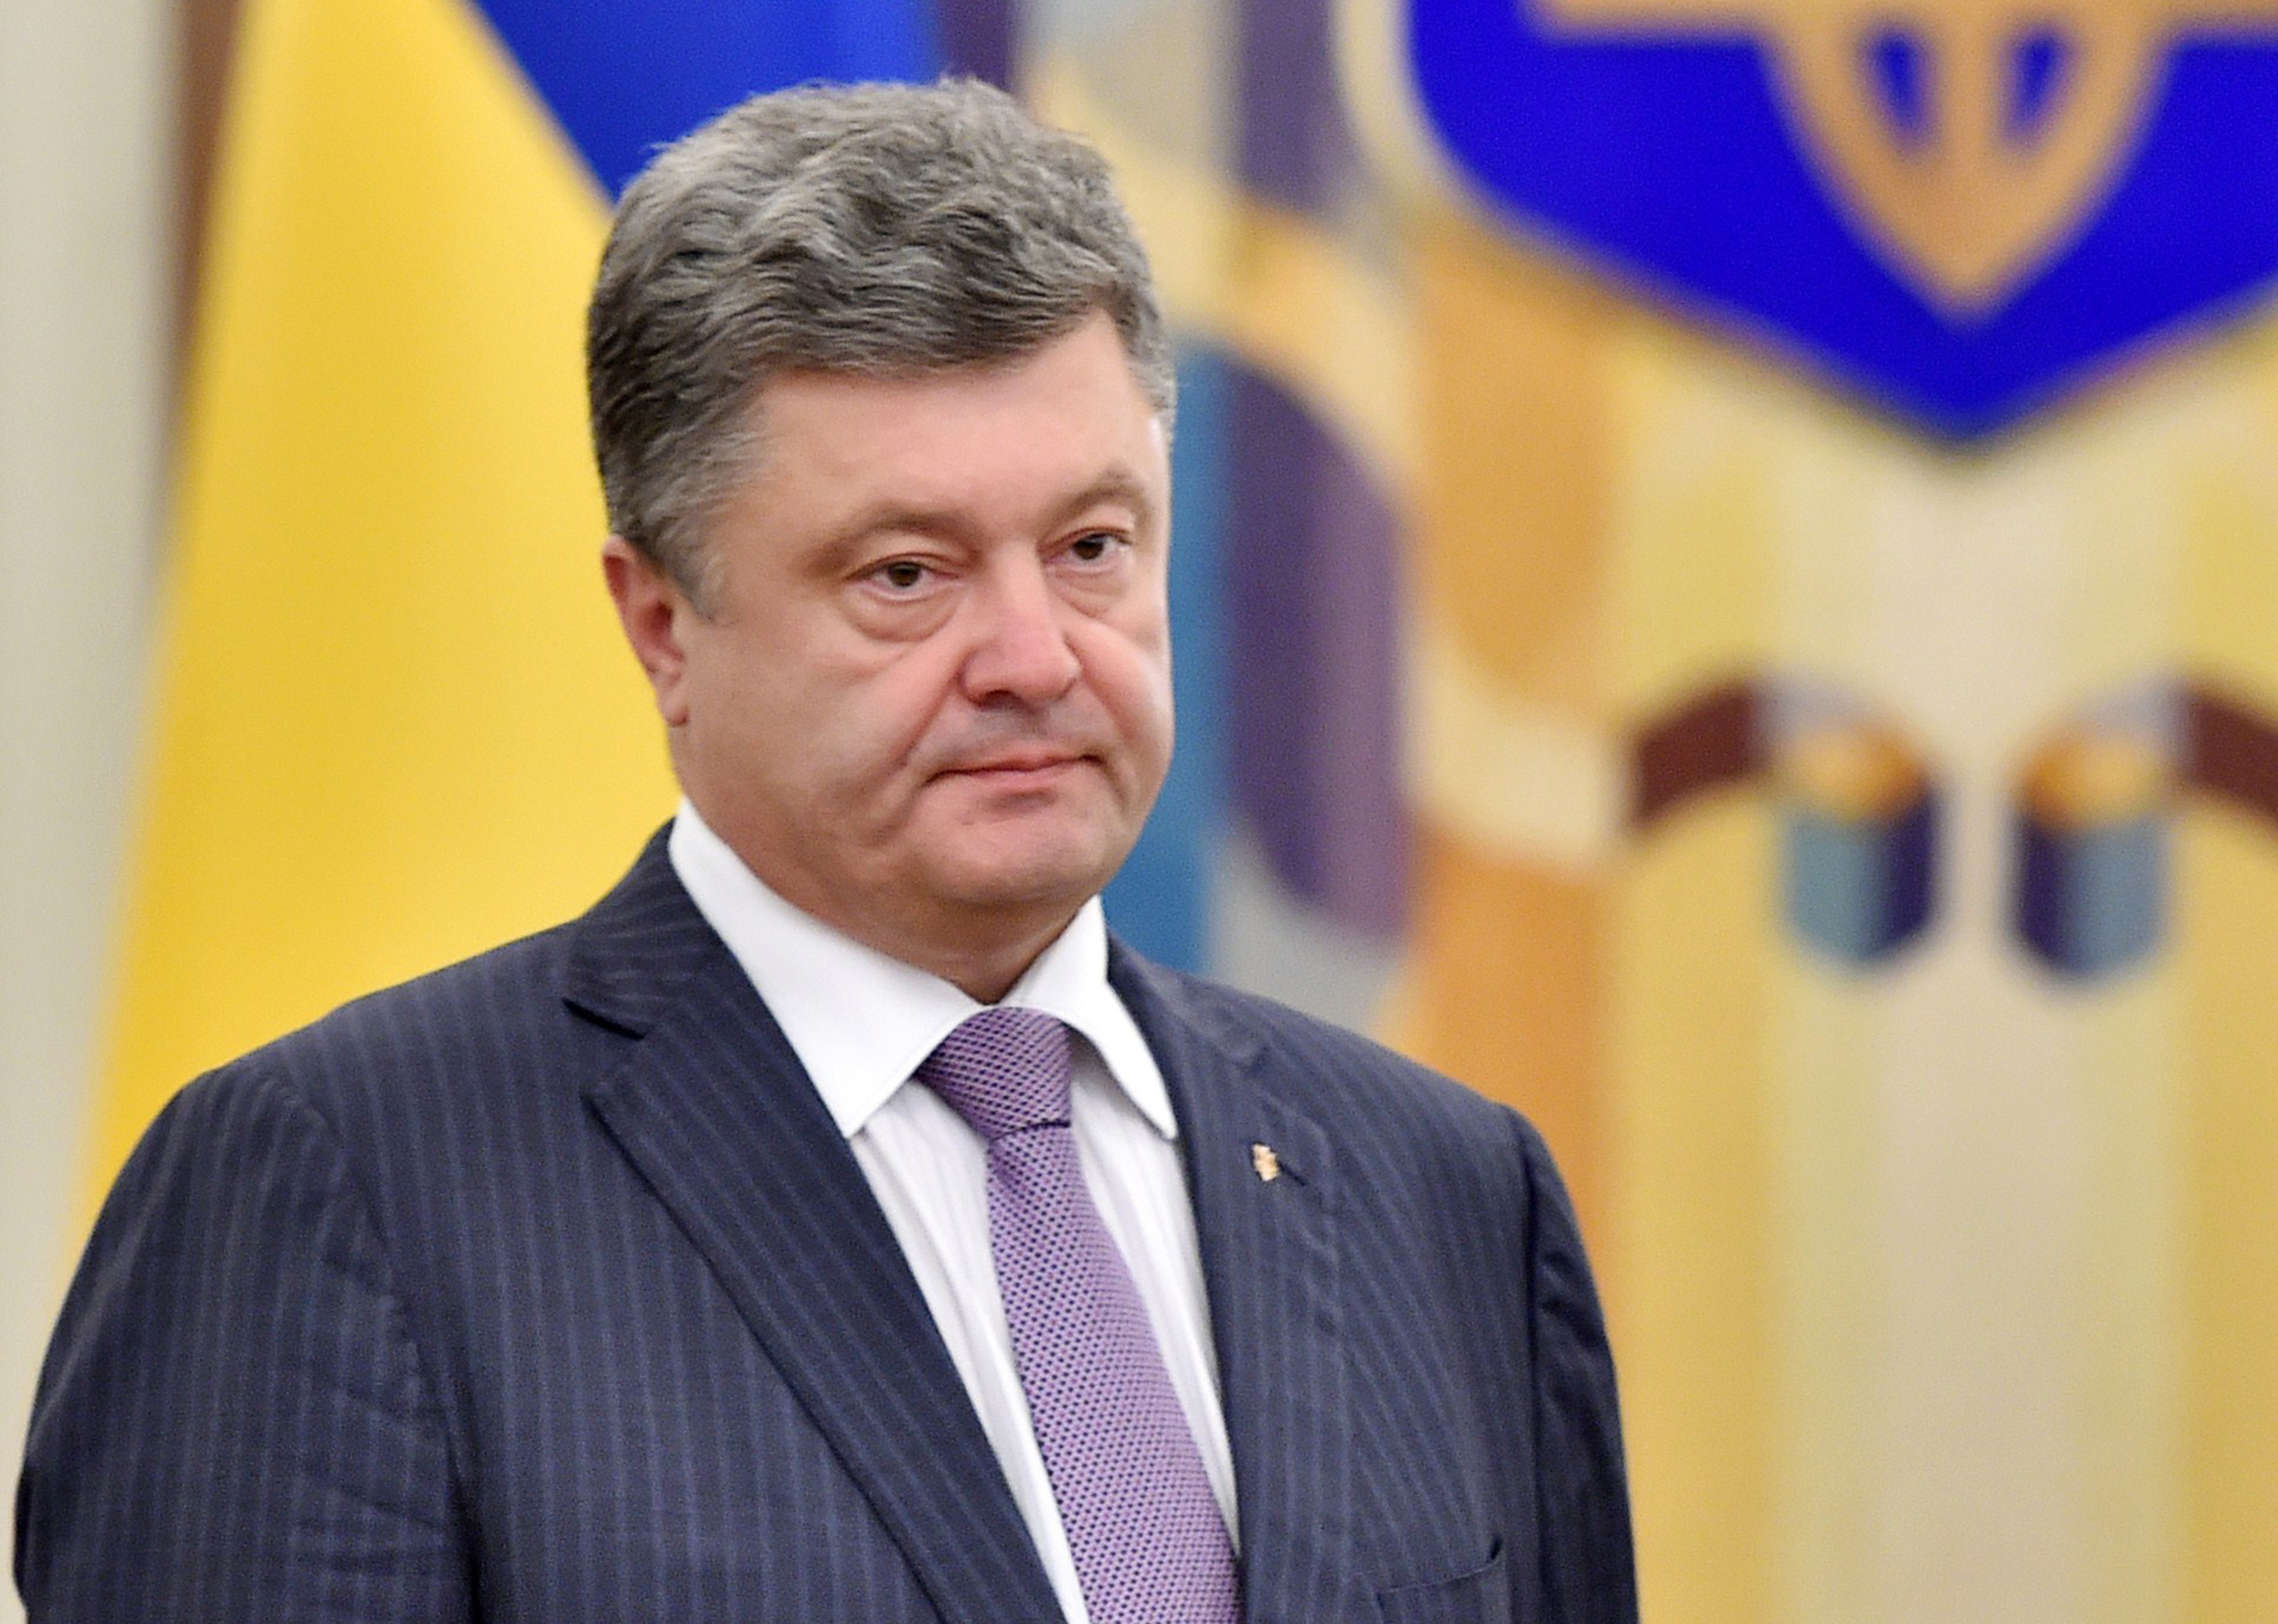 Ukrainian President Petro Poroshenko arrives for a National Security and Defence Council sitting in Kiev on June 16, 2014. Poroshenko said during the opening of the sitting that a ceasefire was the beginning of his peace plan for resolving the conflict in eastern Ukraine.  AFP PHOTO/ SERGEI SUPINSKY        (Photo credit should read SERGEI SUPINSKY/AFP/Getty Images)